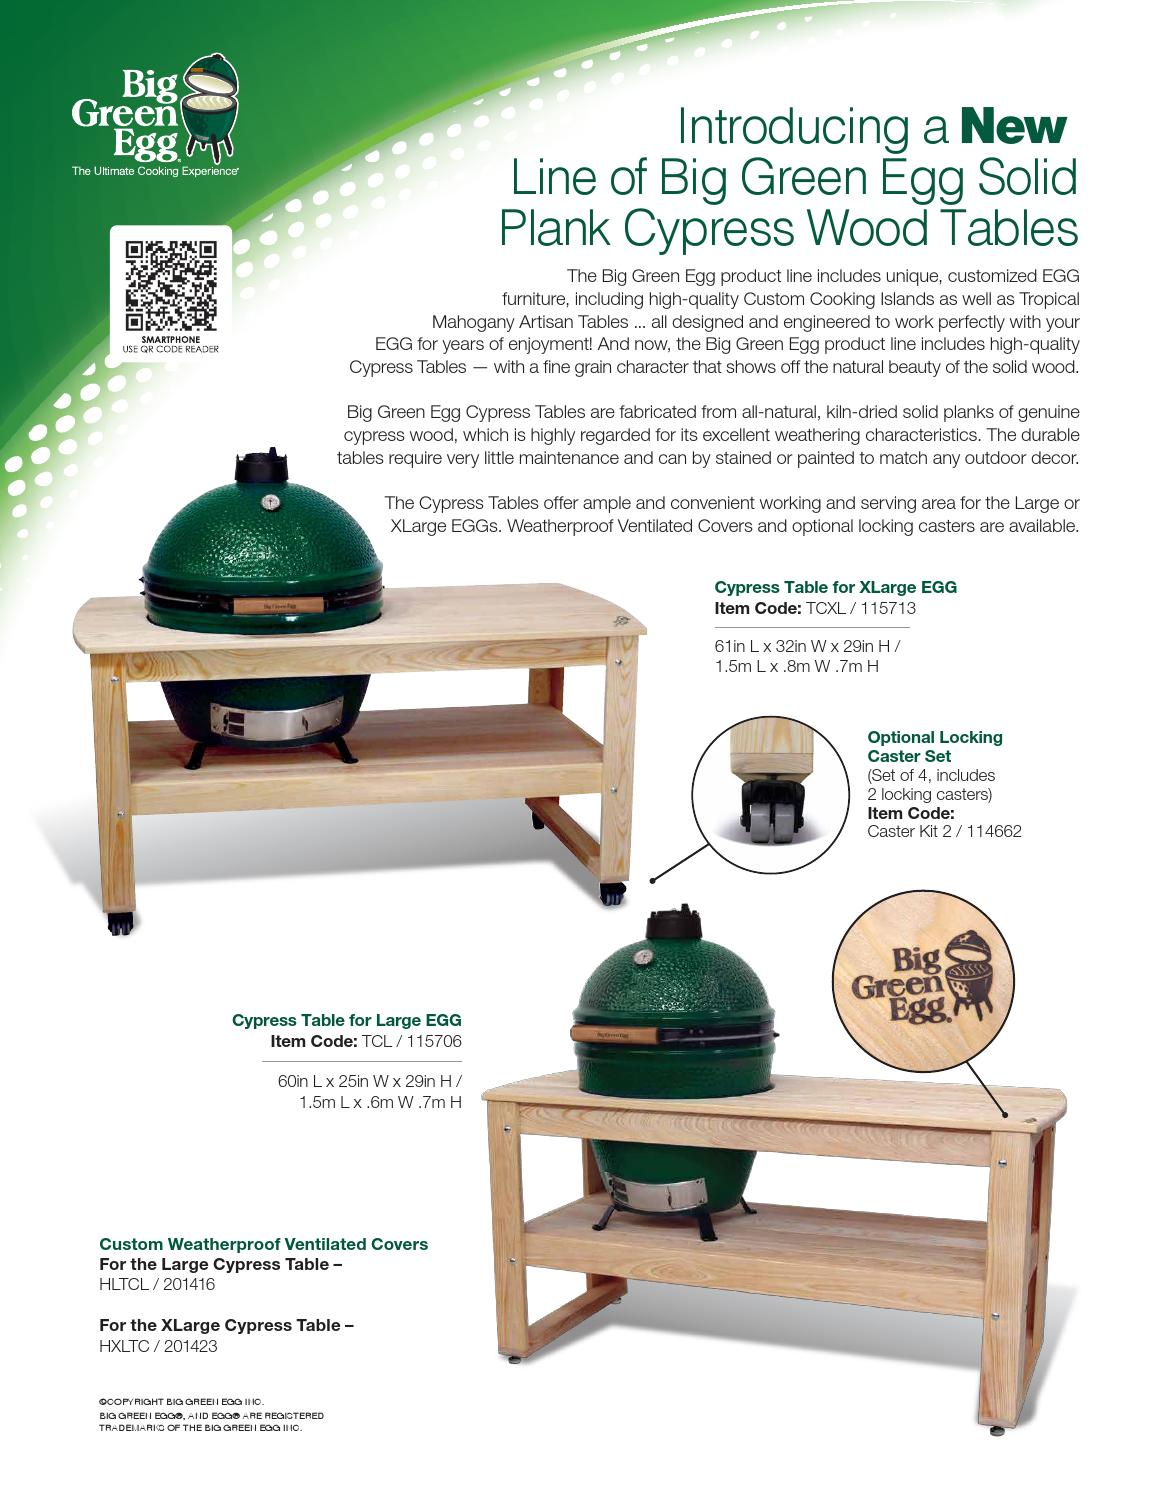 Solid Plank Cypress Wood Table Sell Sheet By Big Green Egg